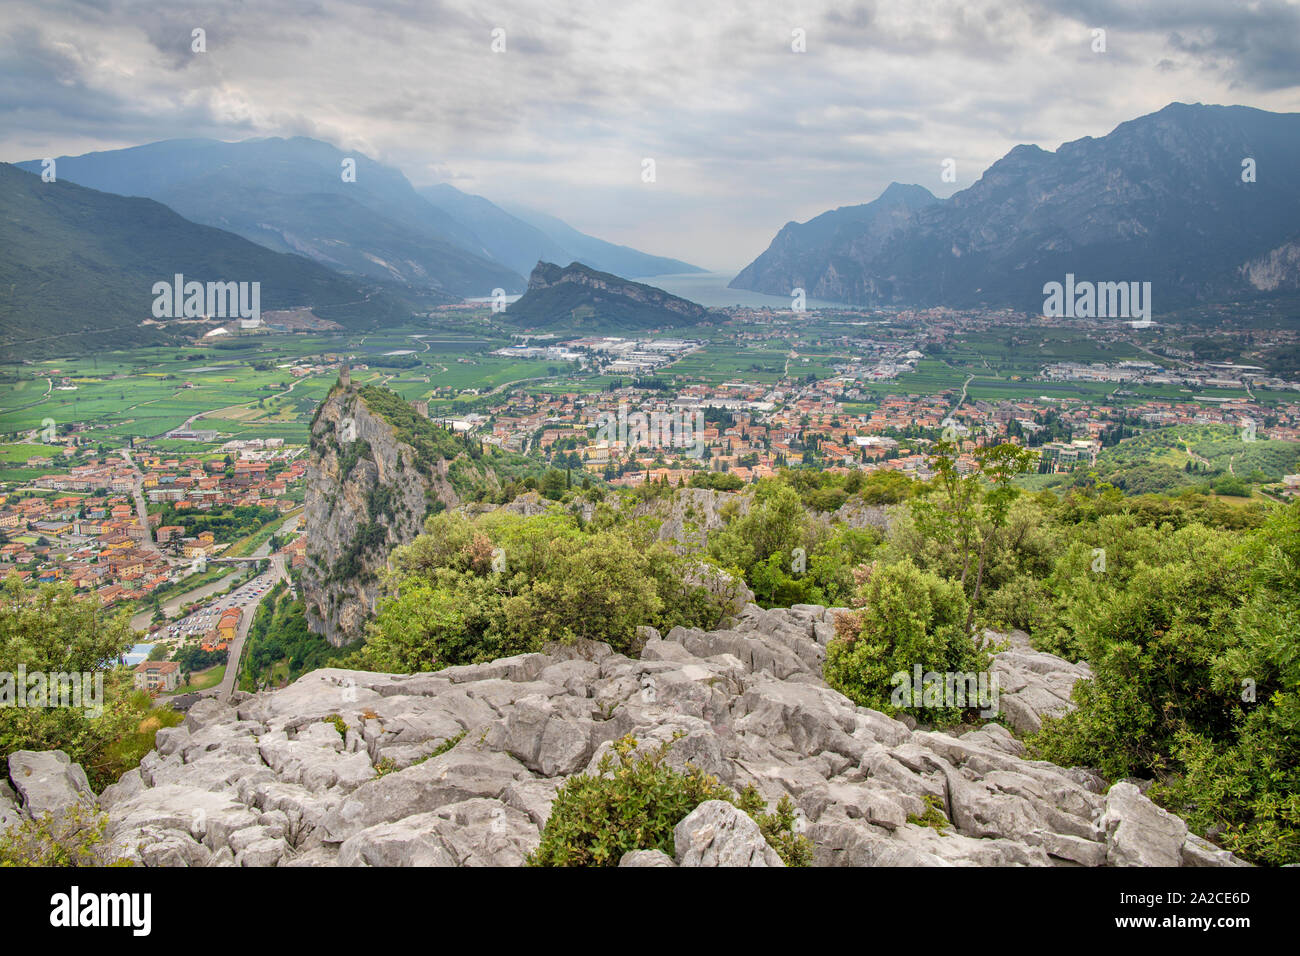 Arco - The Town with the medieval castle, alps and lake in the background. Stock Photo